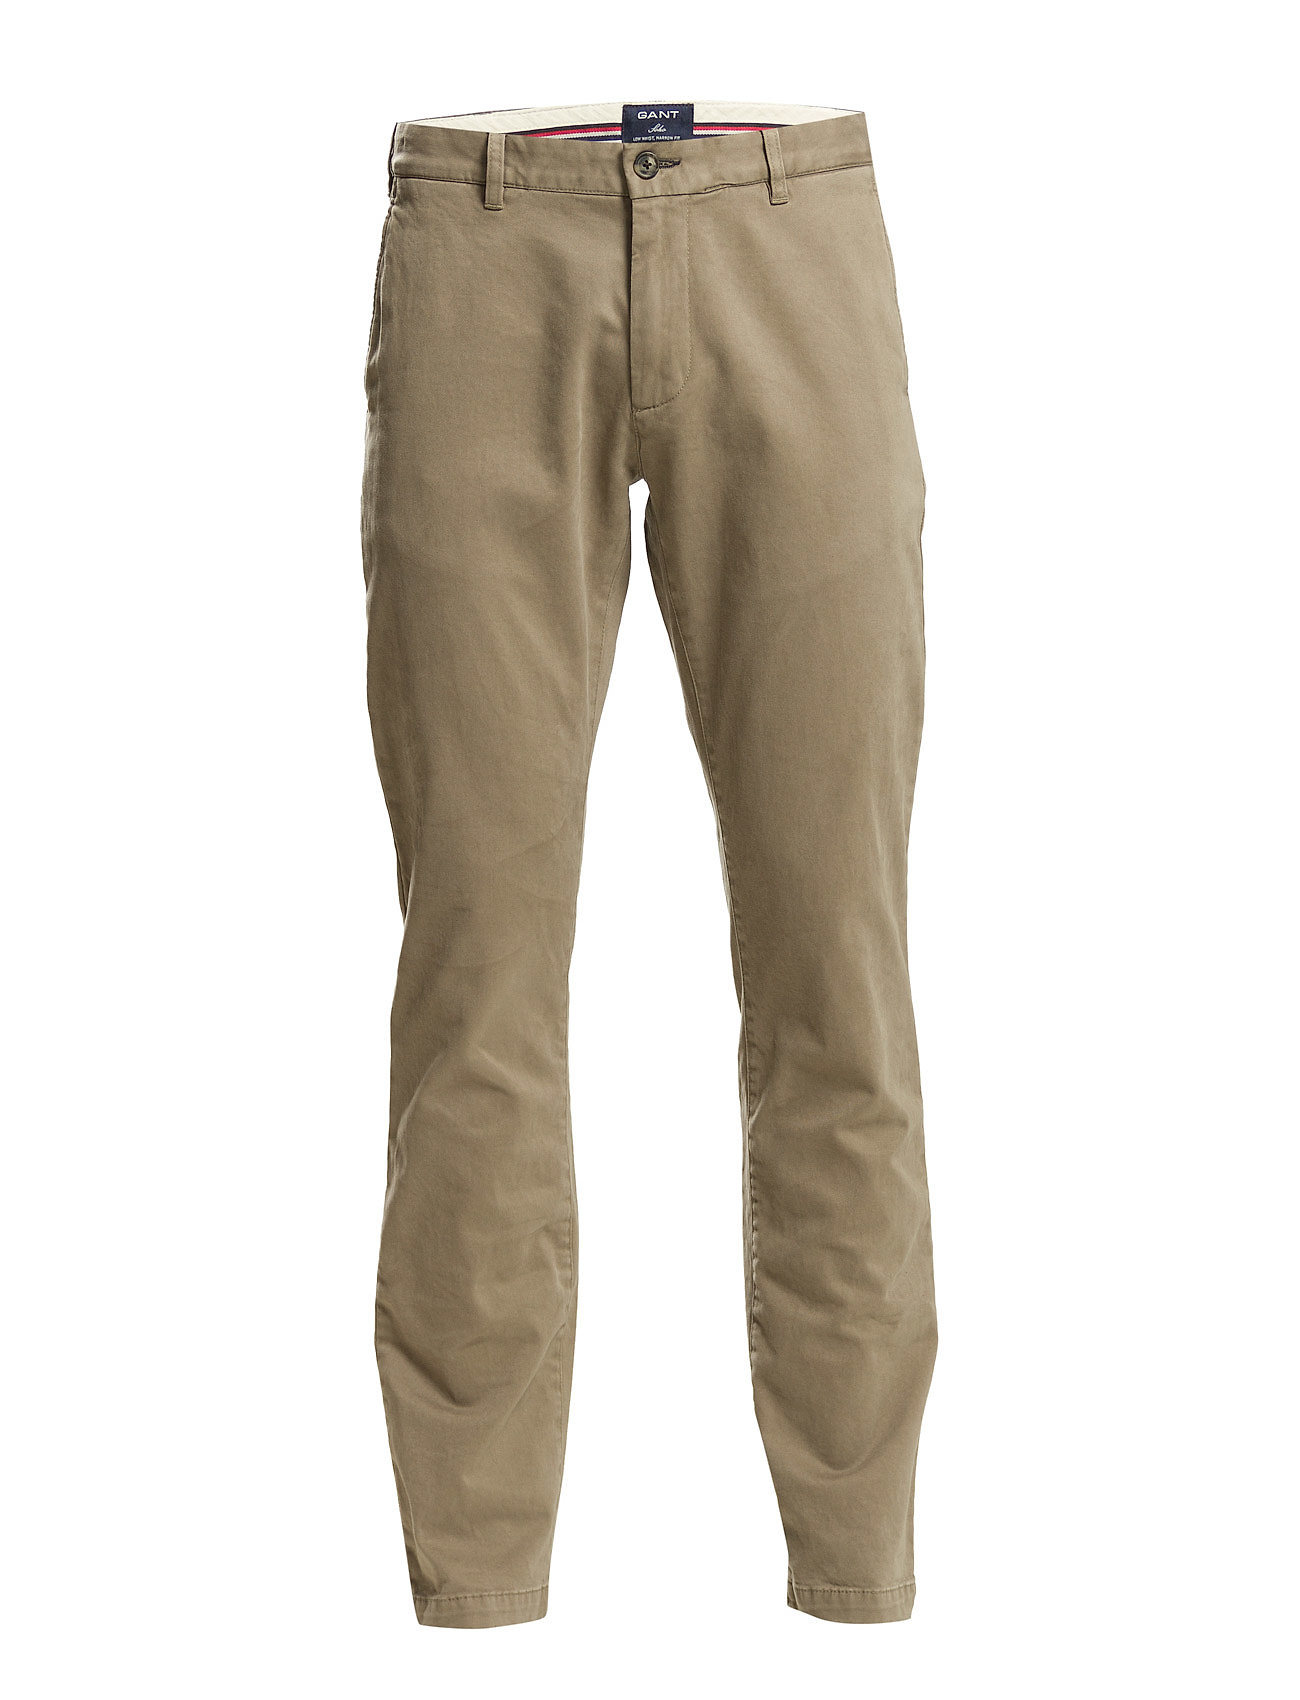 GANT SOHO COMFORT SUPER CHINO - DESERT BROWN